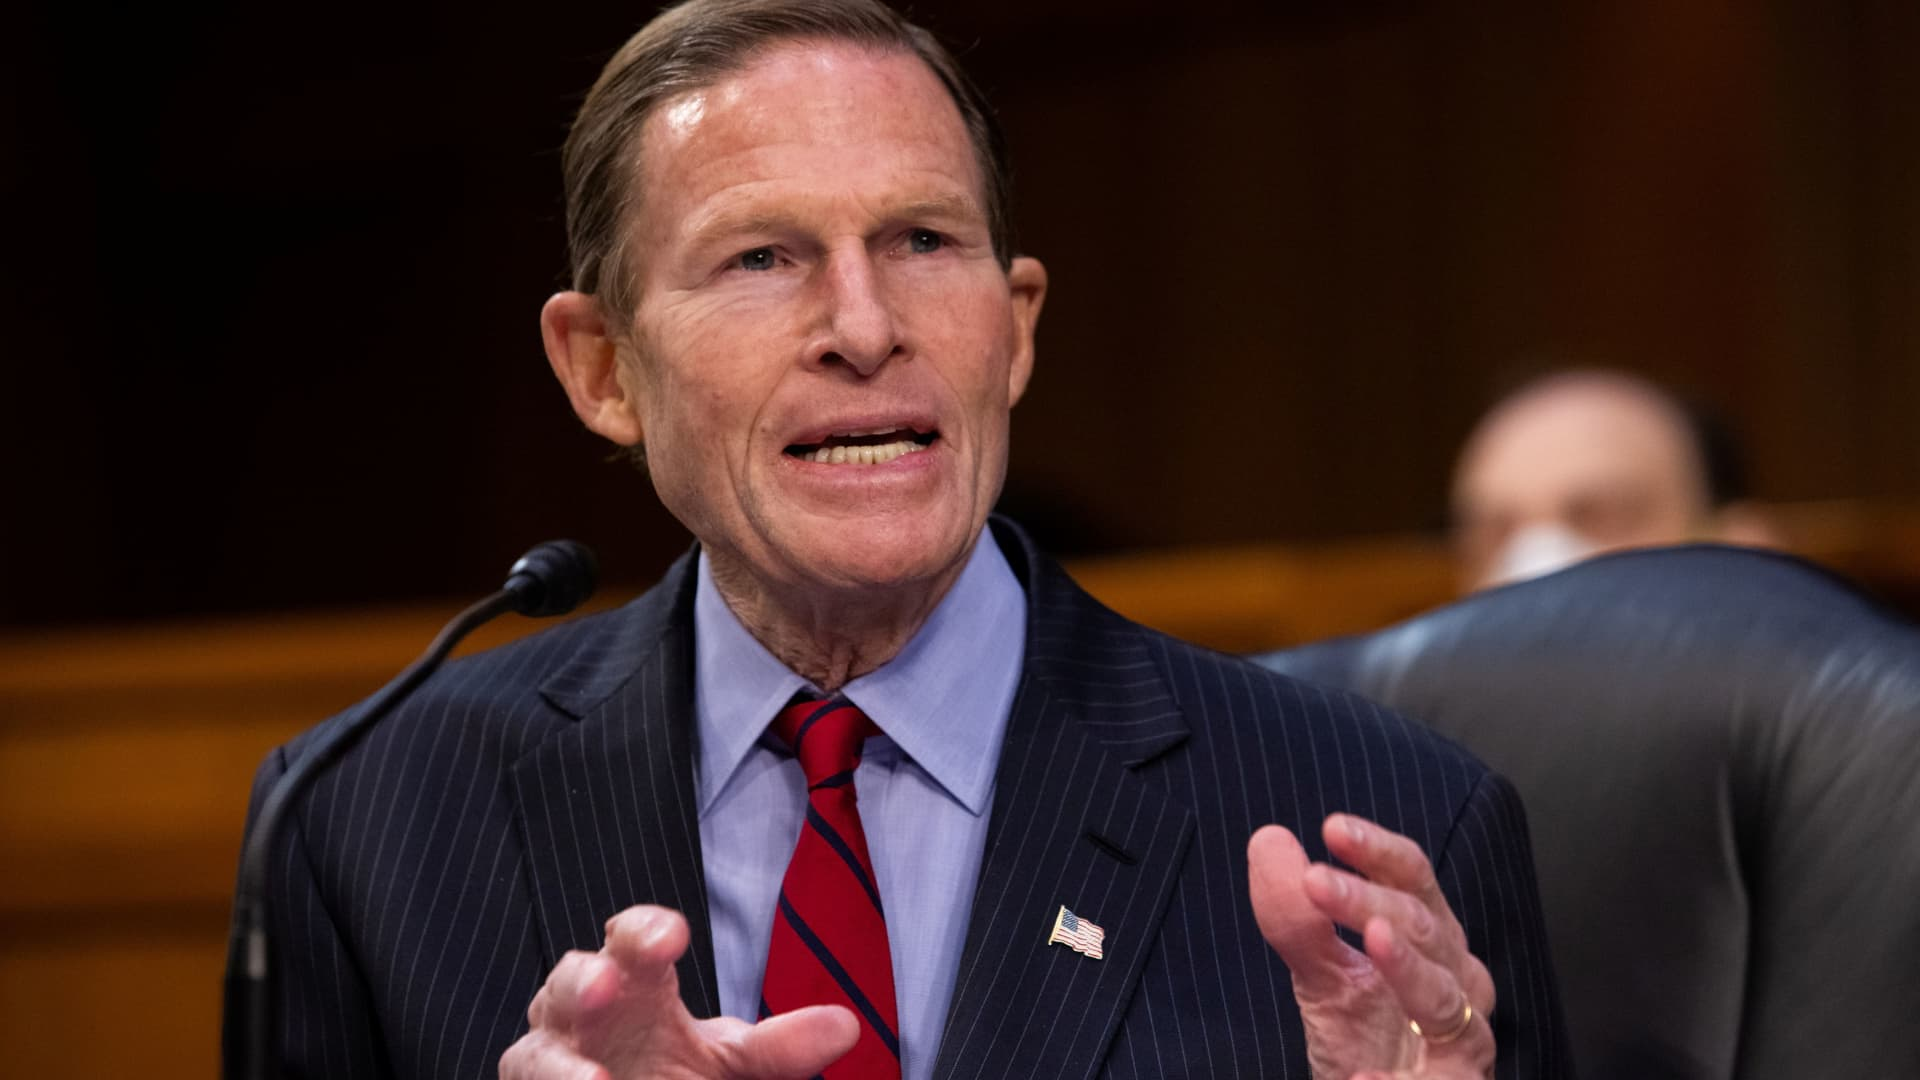 Senator Richard Blumenthal, D-CT, speaks during a Senate Judiciary Committee hearing on the January 6th insurrection, in the Hart Senate Office Building on Capitol Hill in Washington, DC, March 2, 2021.